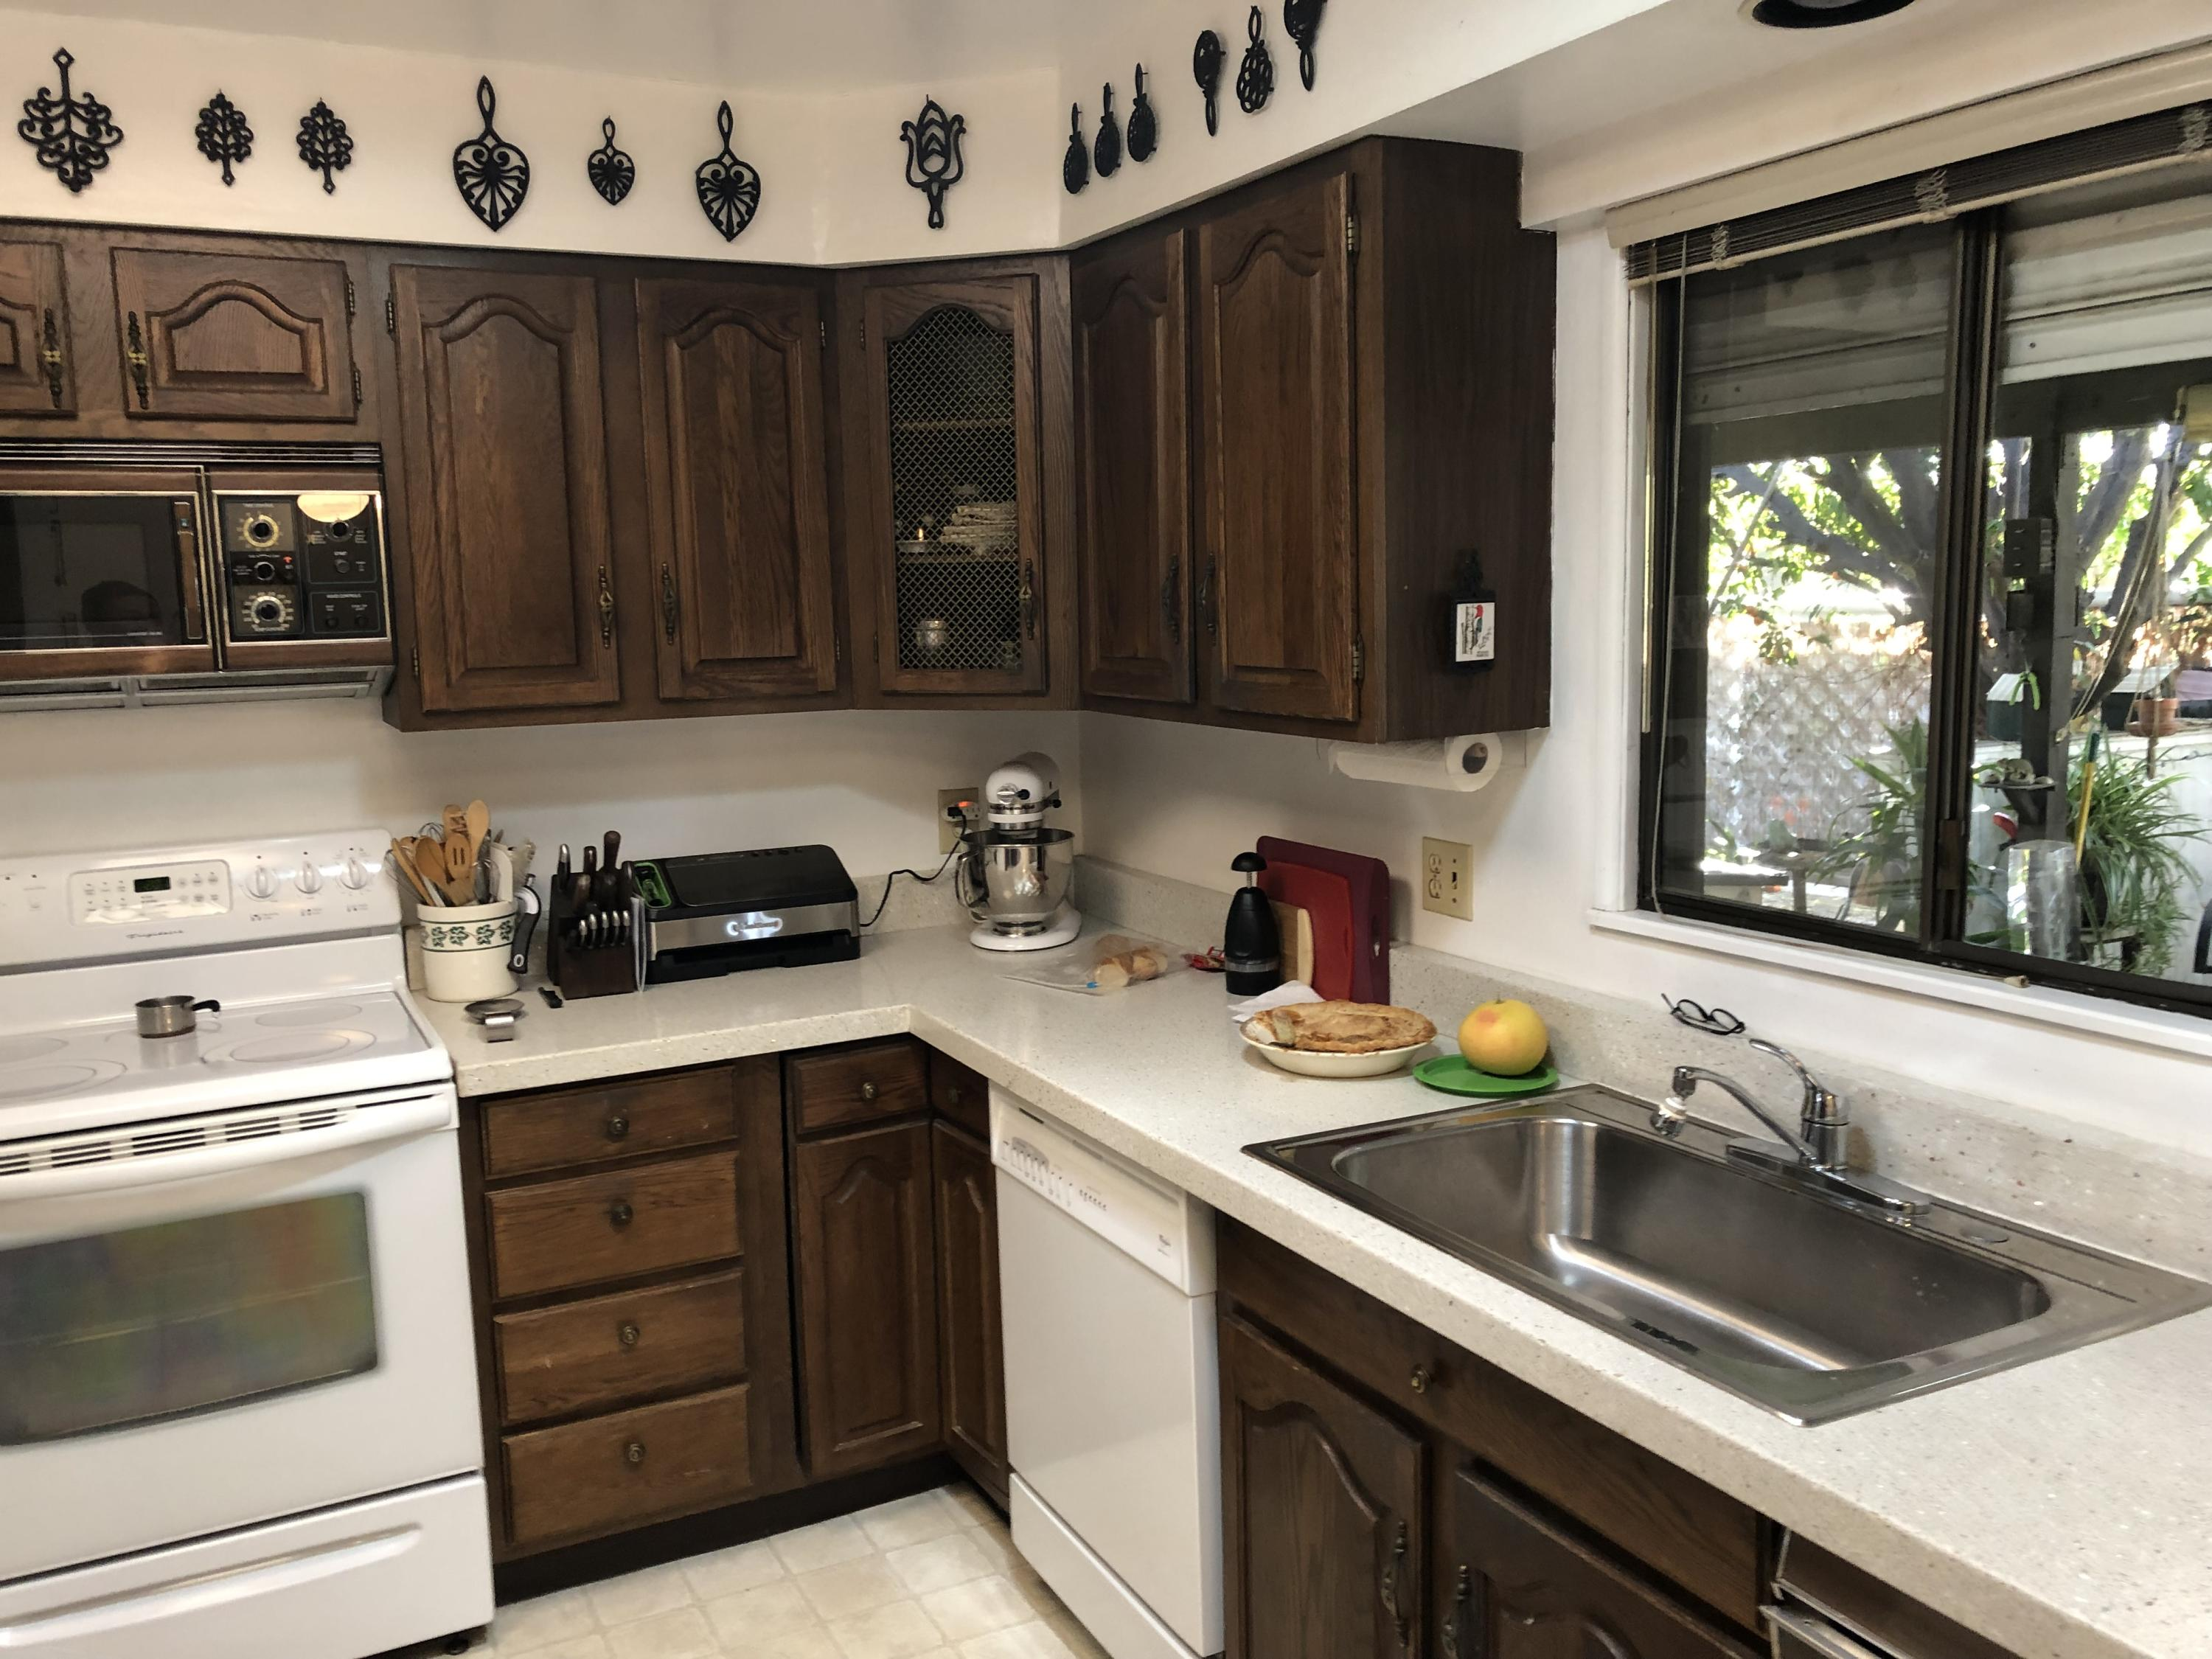 459 Cerritos Way, Cathedral City, California 92234, 2 Bedrooms Bedrooms, ,2 BathroomsBathrooms,Manufactured in park,For Sale,459 Cerritos Way,219044543